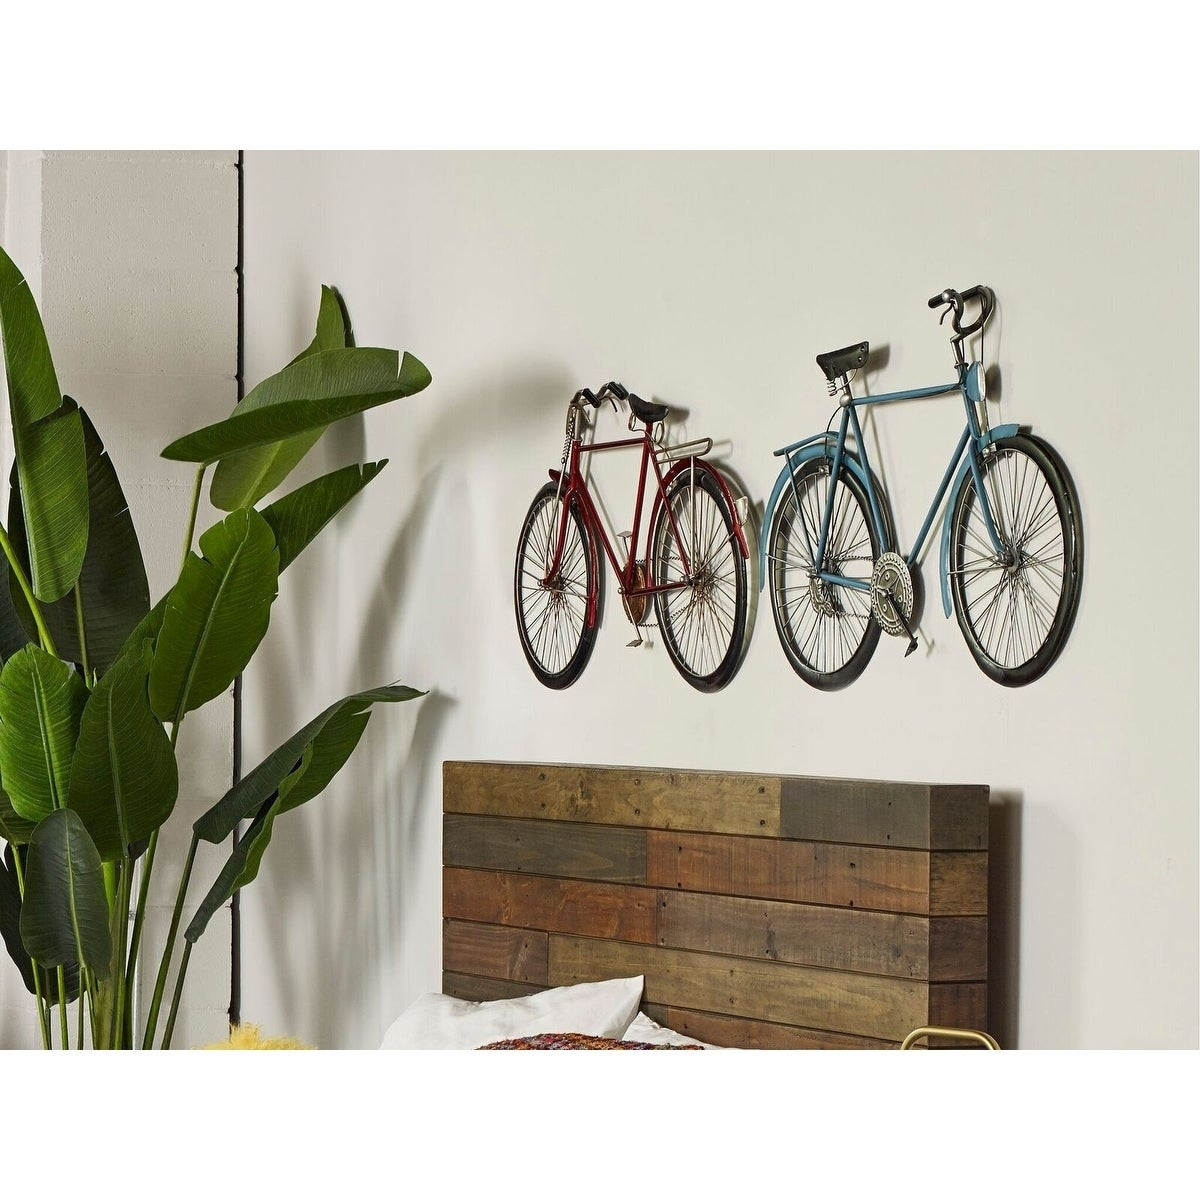 Aurelle Home Red Iron Bike Wall Decor Intended For Bike Wall Decor (View 23 of 30)